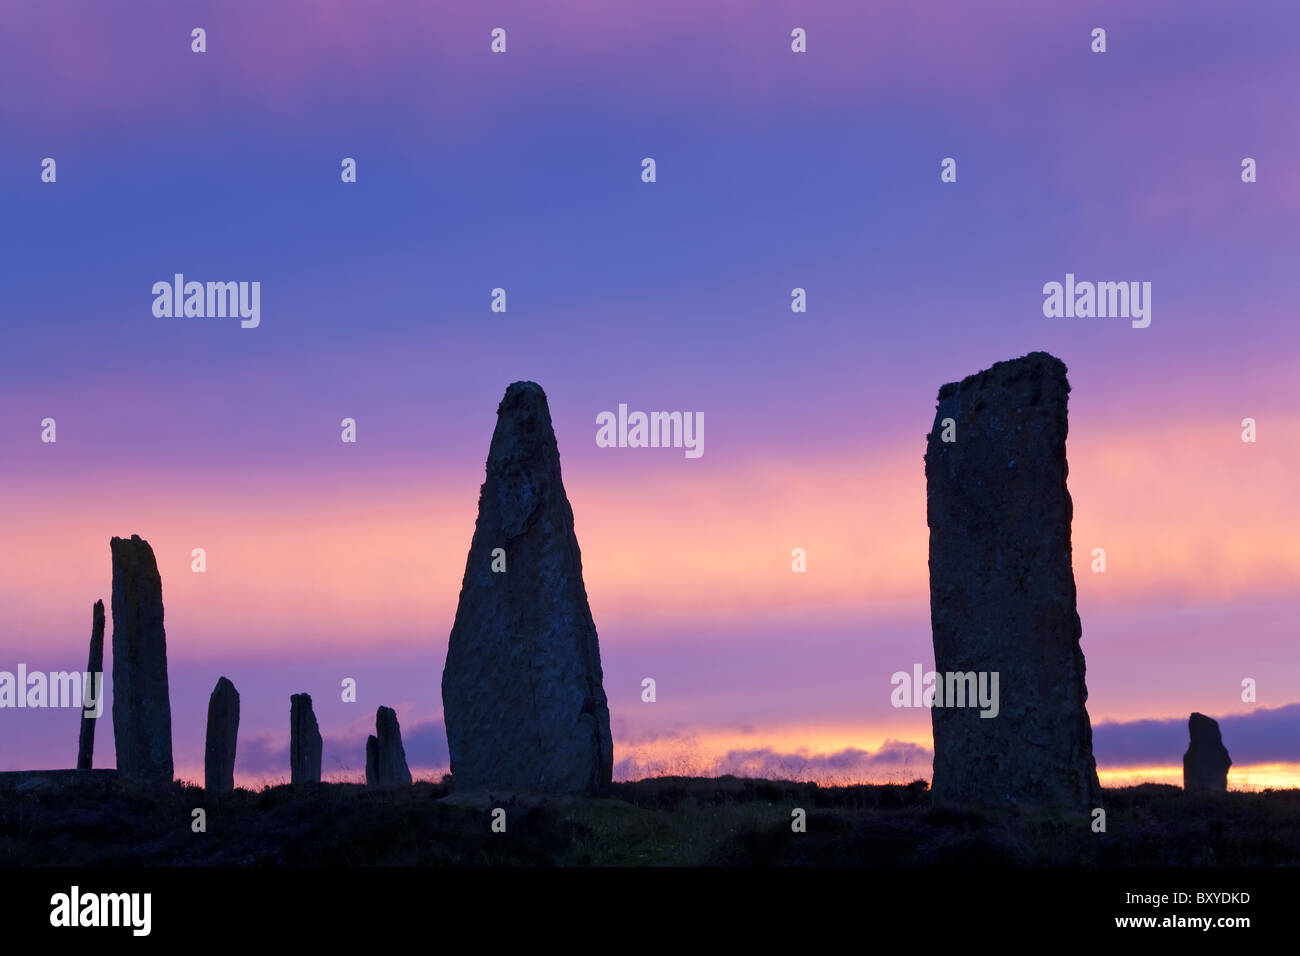 The Ring of Brodgar standing stones Orkney Islands Scotland - Stock Image